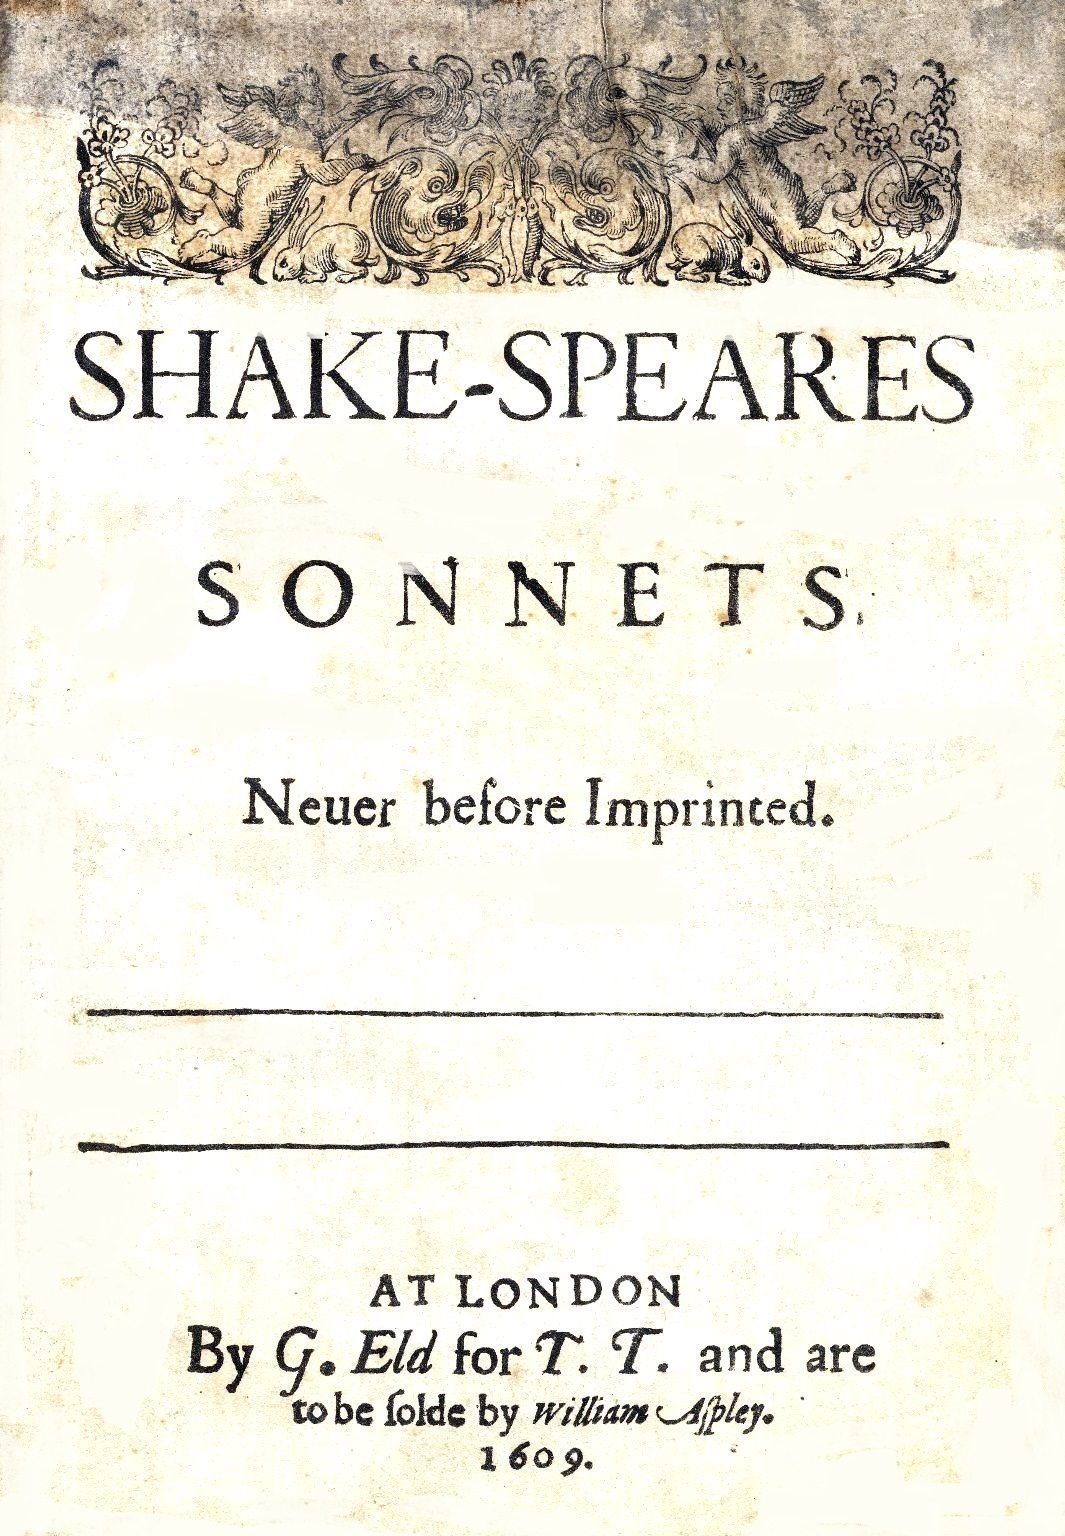 https://upload.wikimedia.org/wikipedia/commons/f/f6/Sonnets1609titlepage.jpg